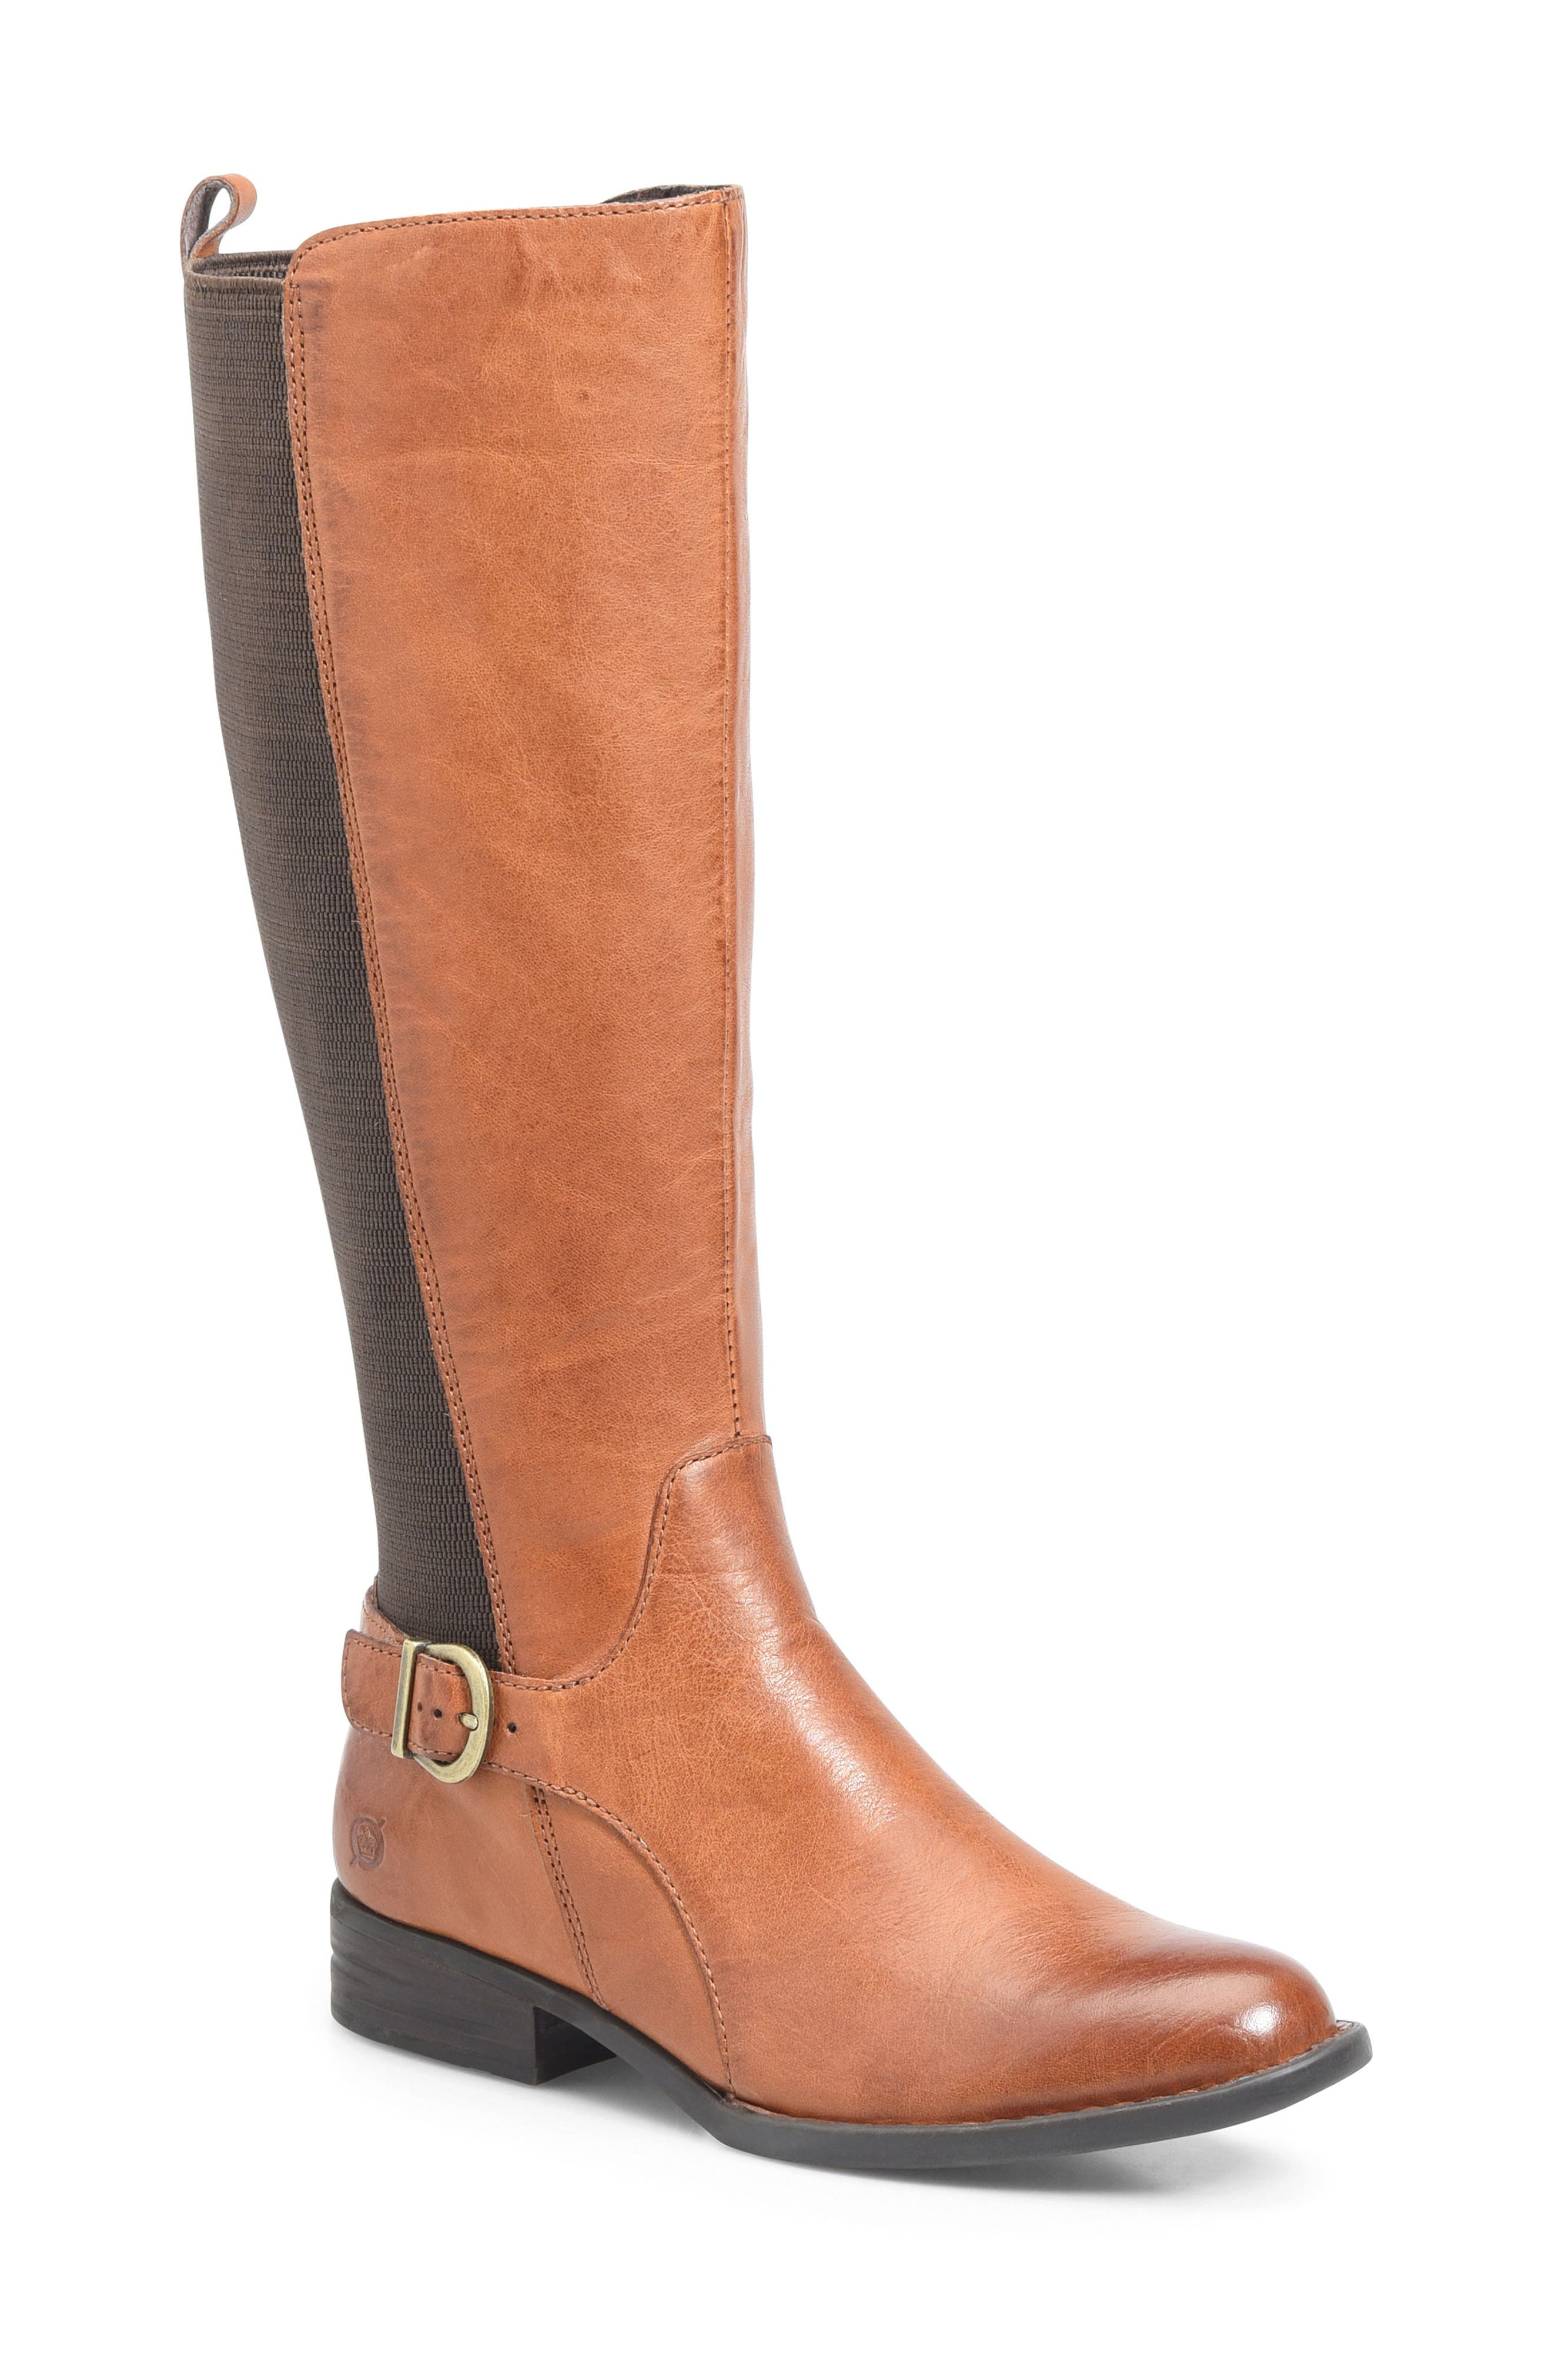 Campbell Knee High Elastic Back Boot,                         Main,                         color, Tan Leather